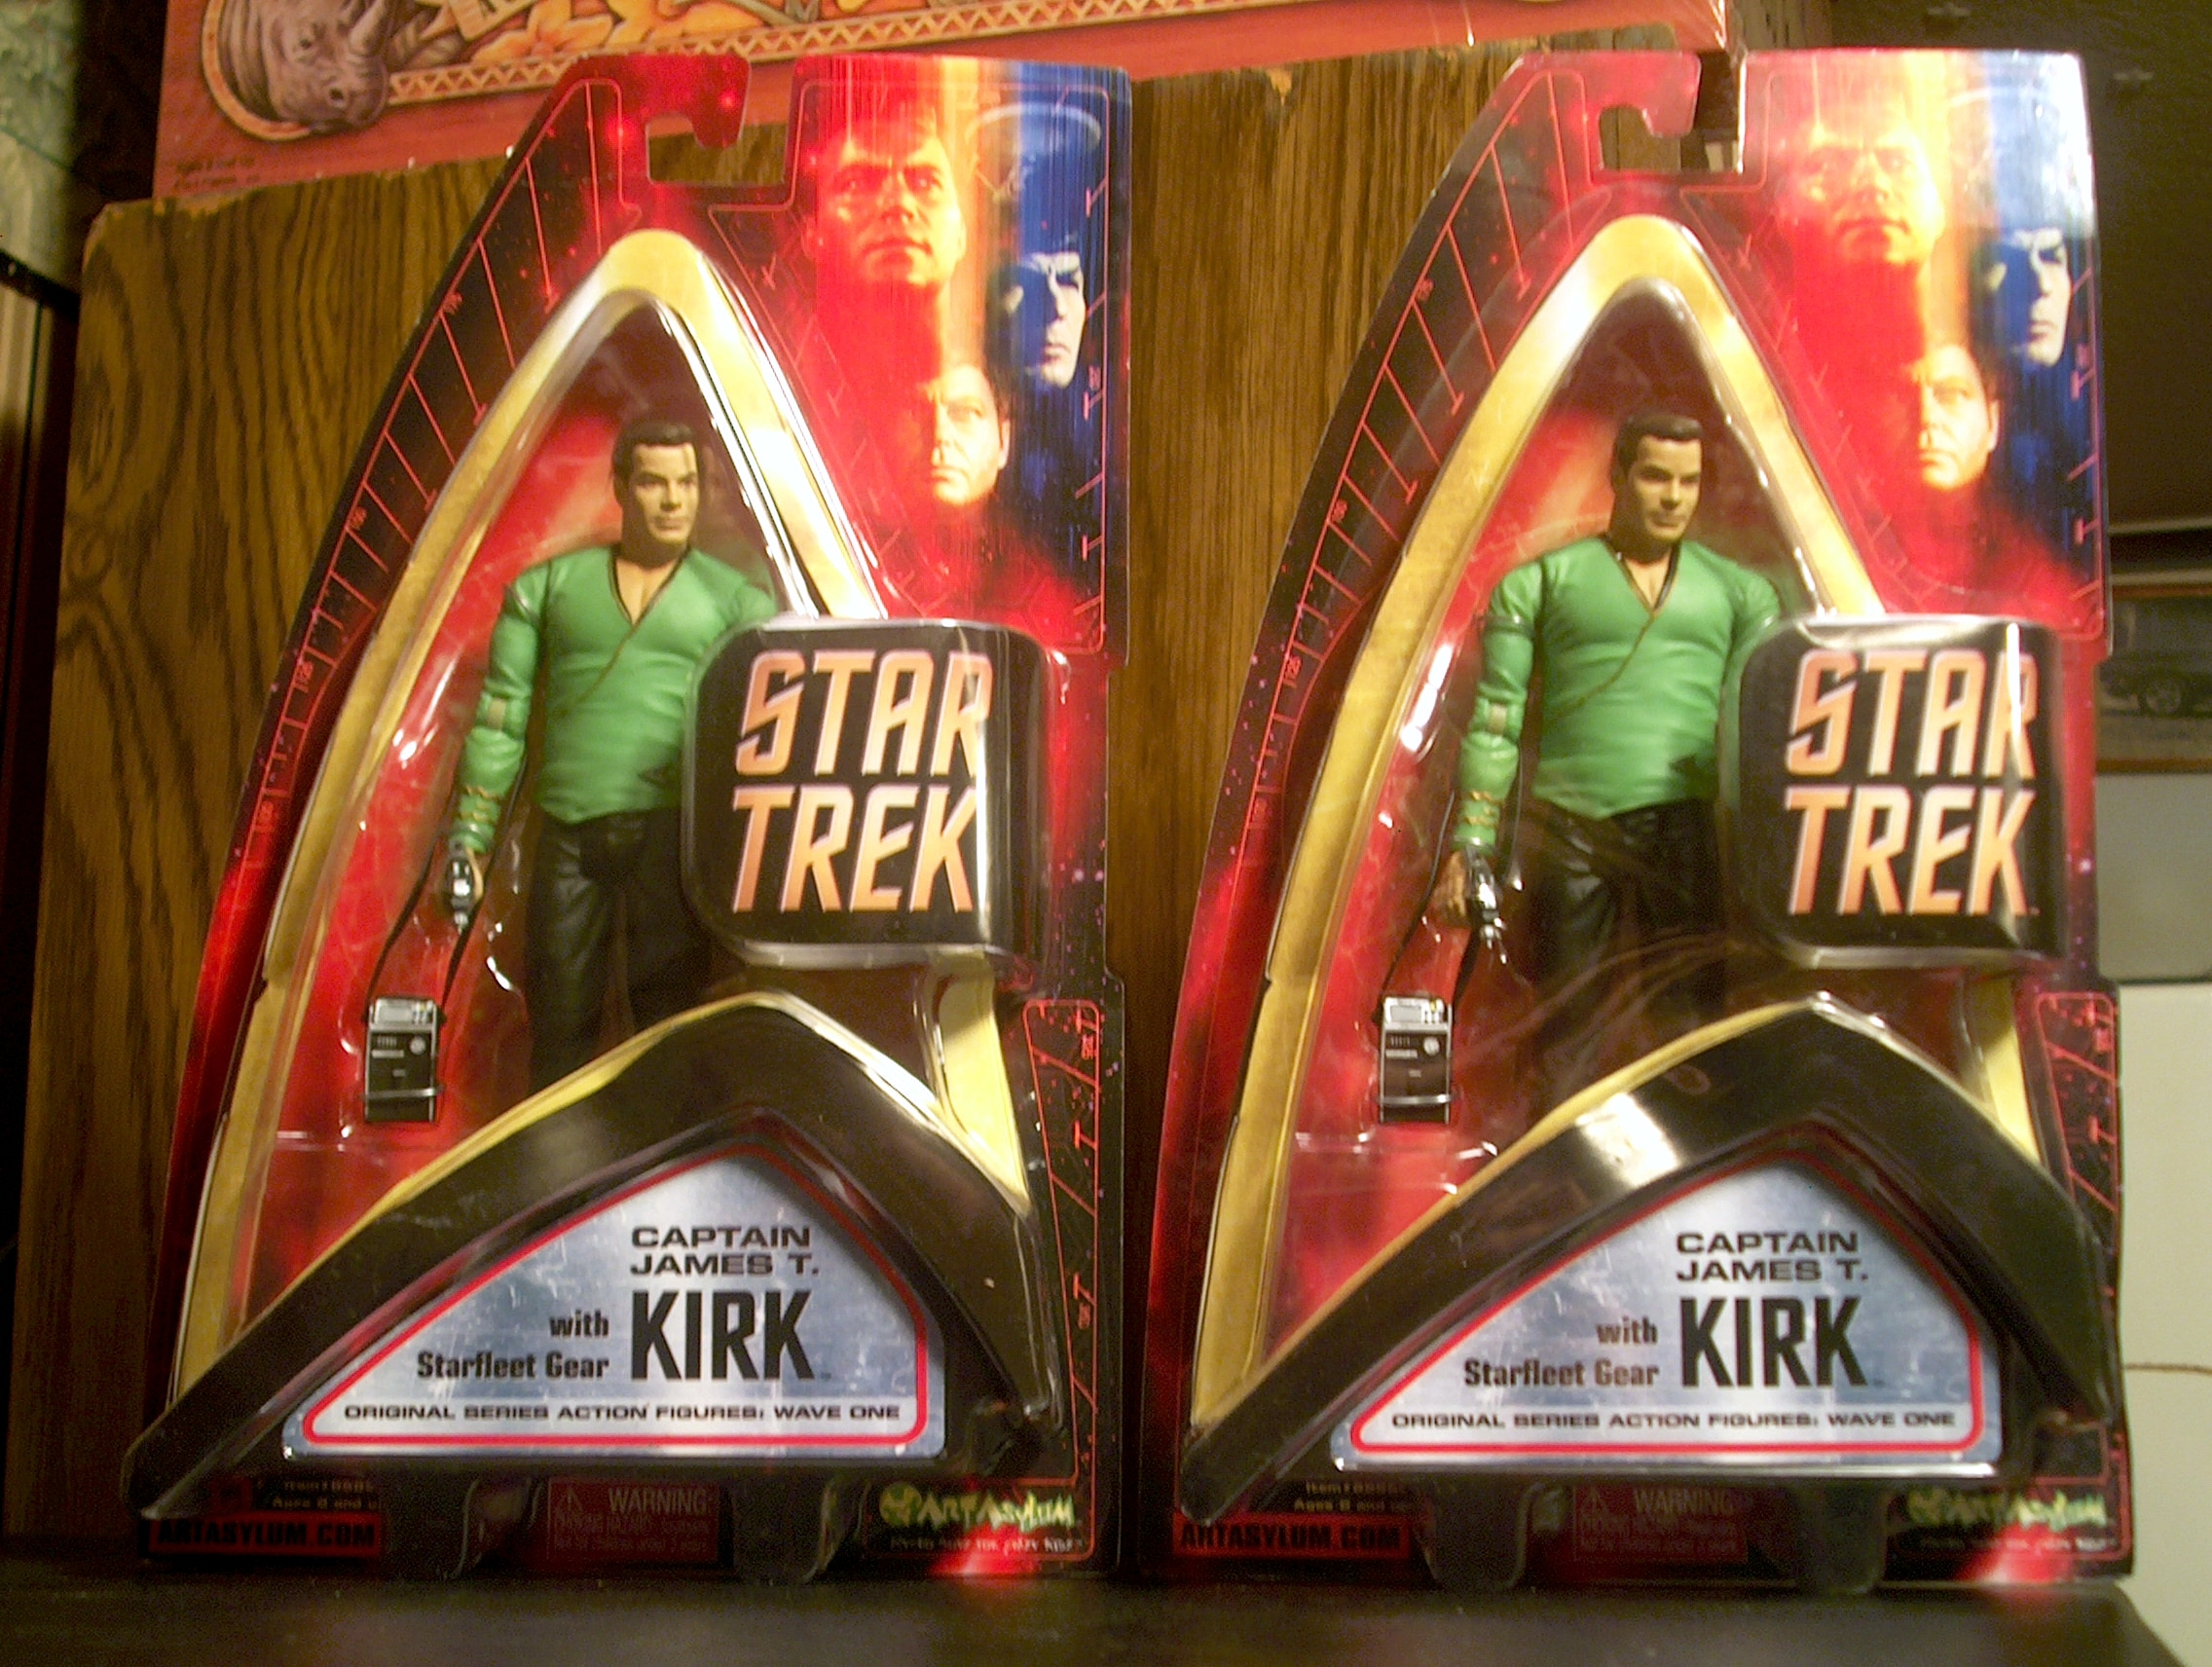 Captain James T. Kirk with Starfleet Gear